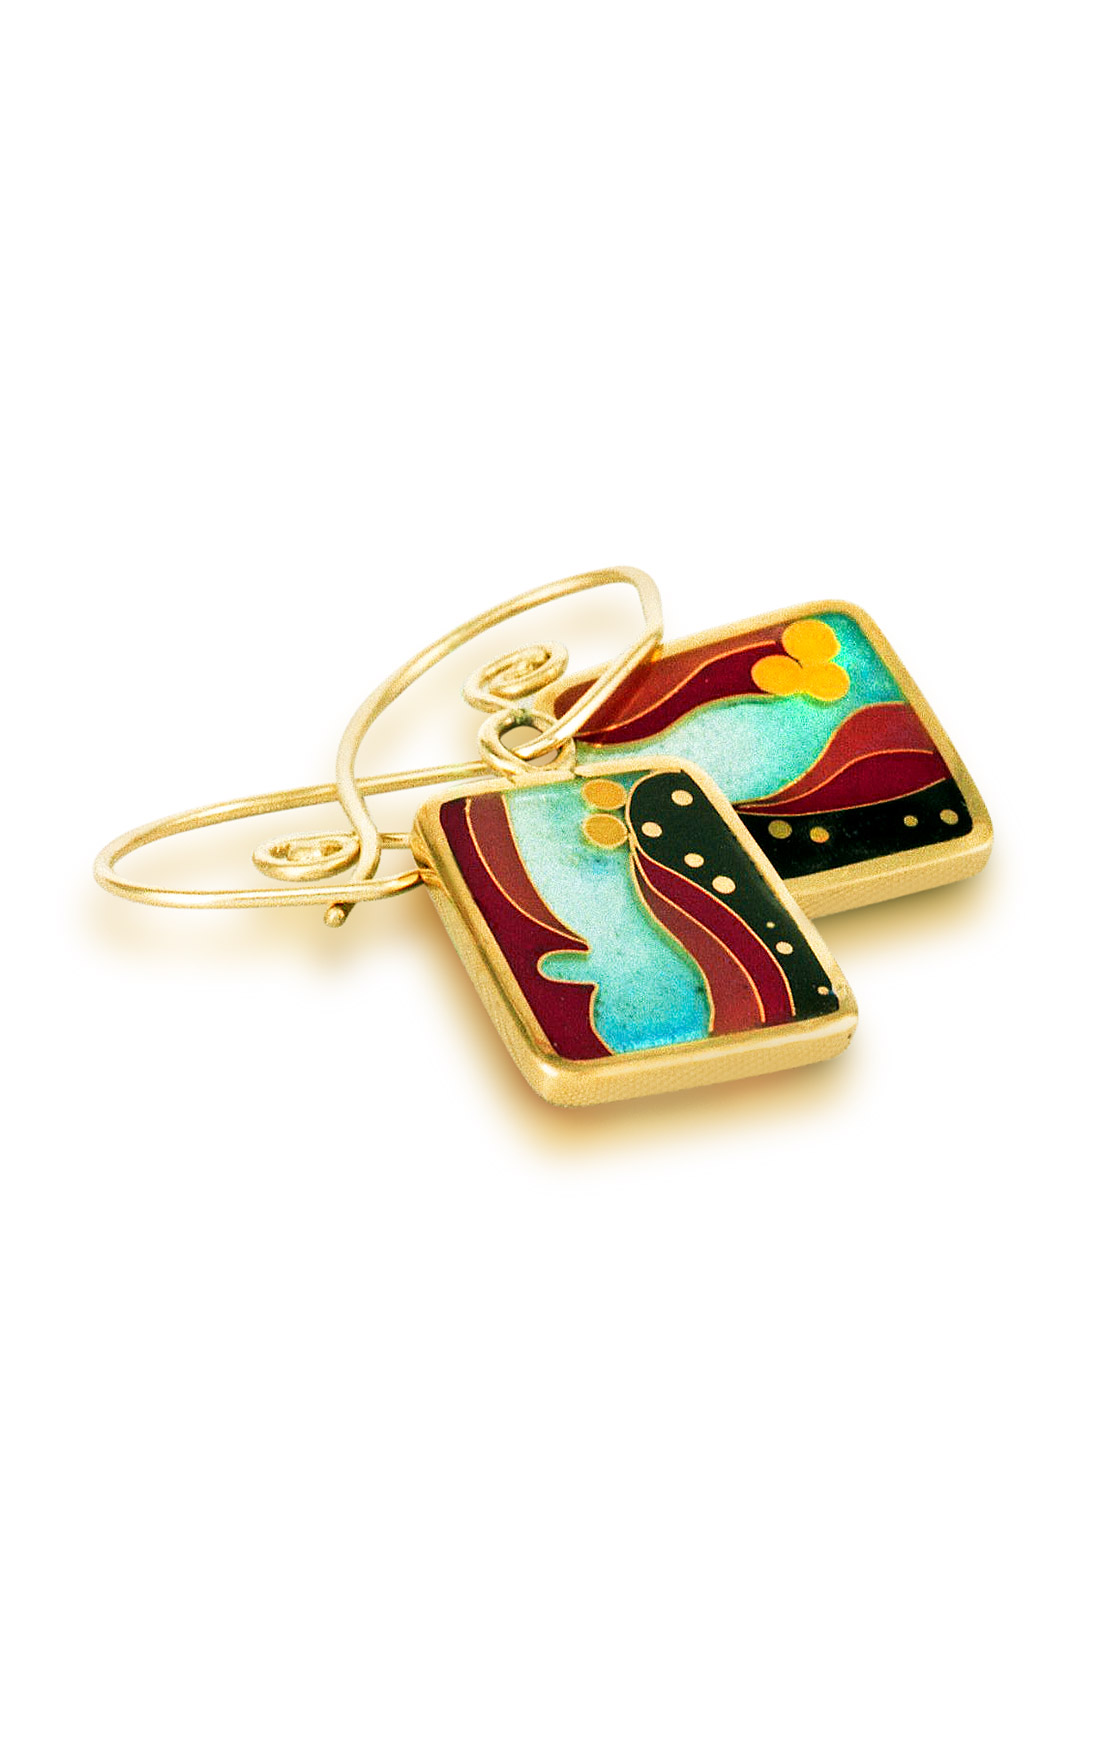 Coral Reef | Cloisonne Jewelry | Enamel Jewelry | Unique Jewelry Designs